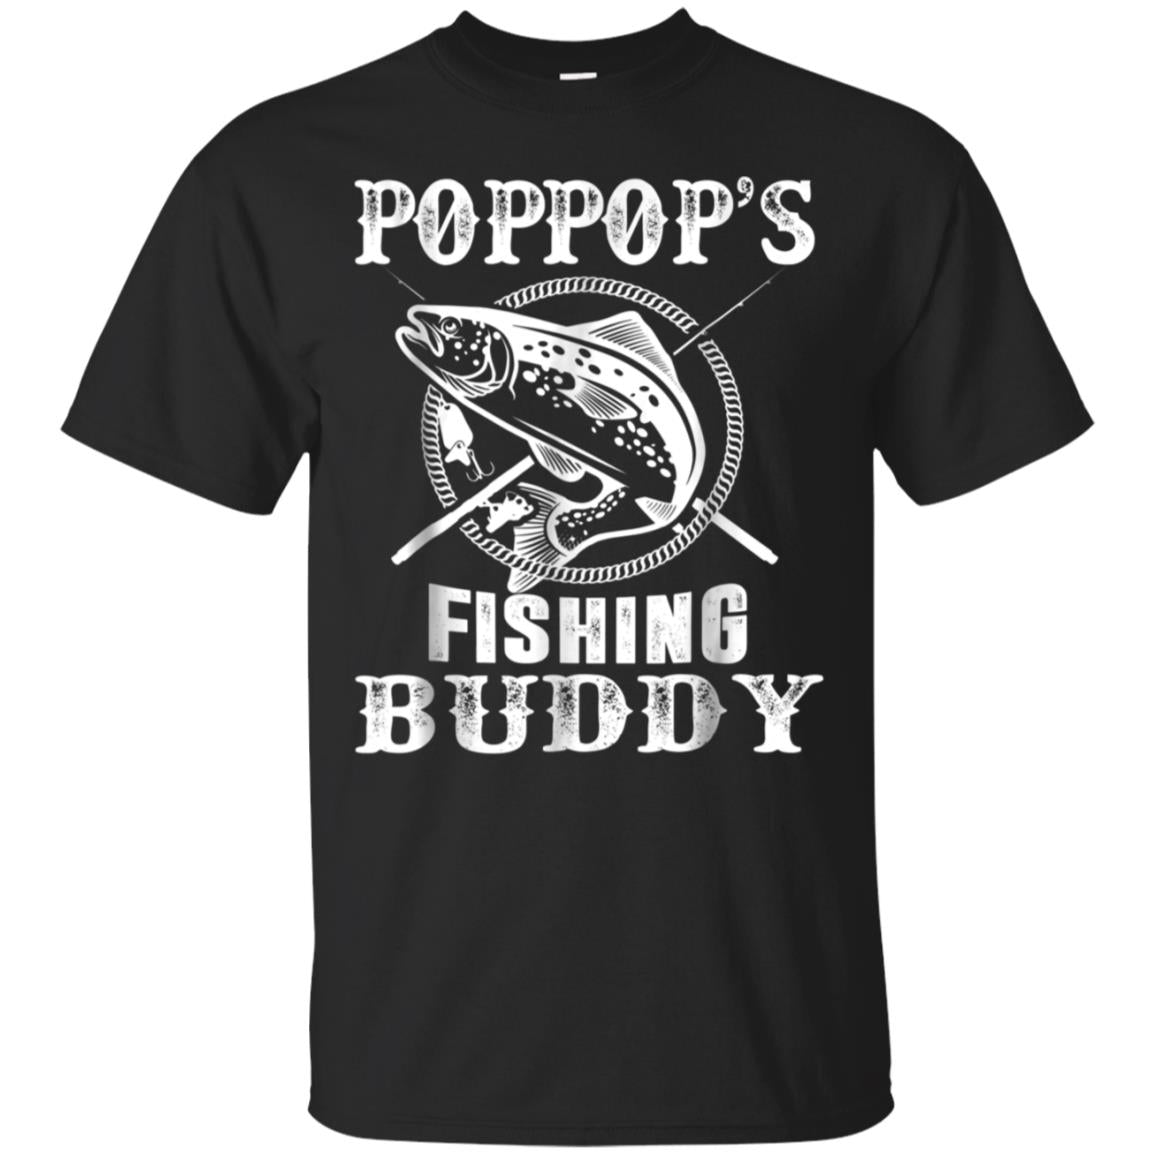 Pop Pop's Fishing Buddy T-Shirt Young Fisherman Gift Shirt 99promocode